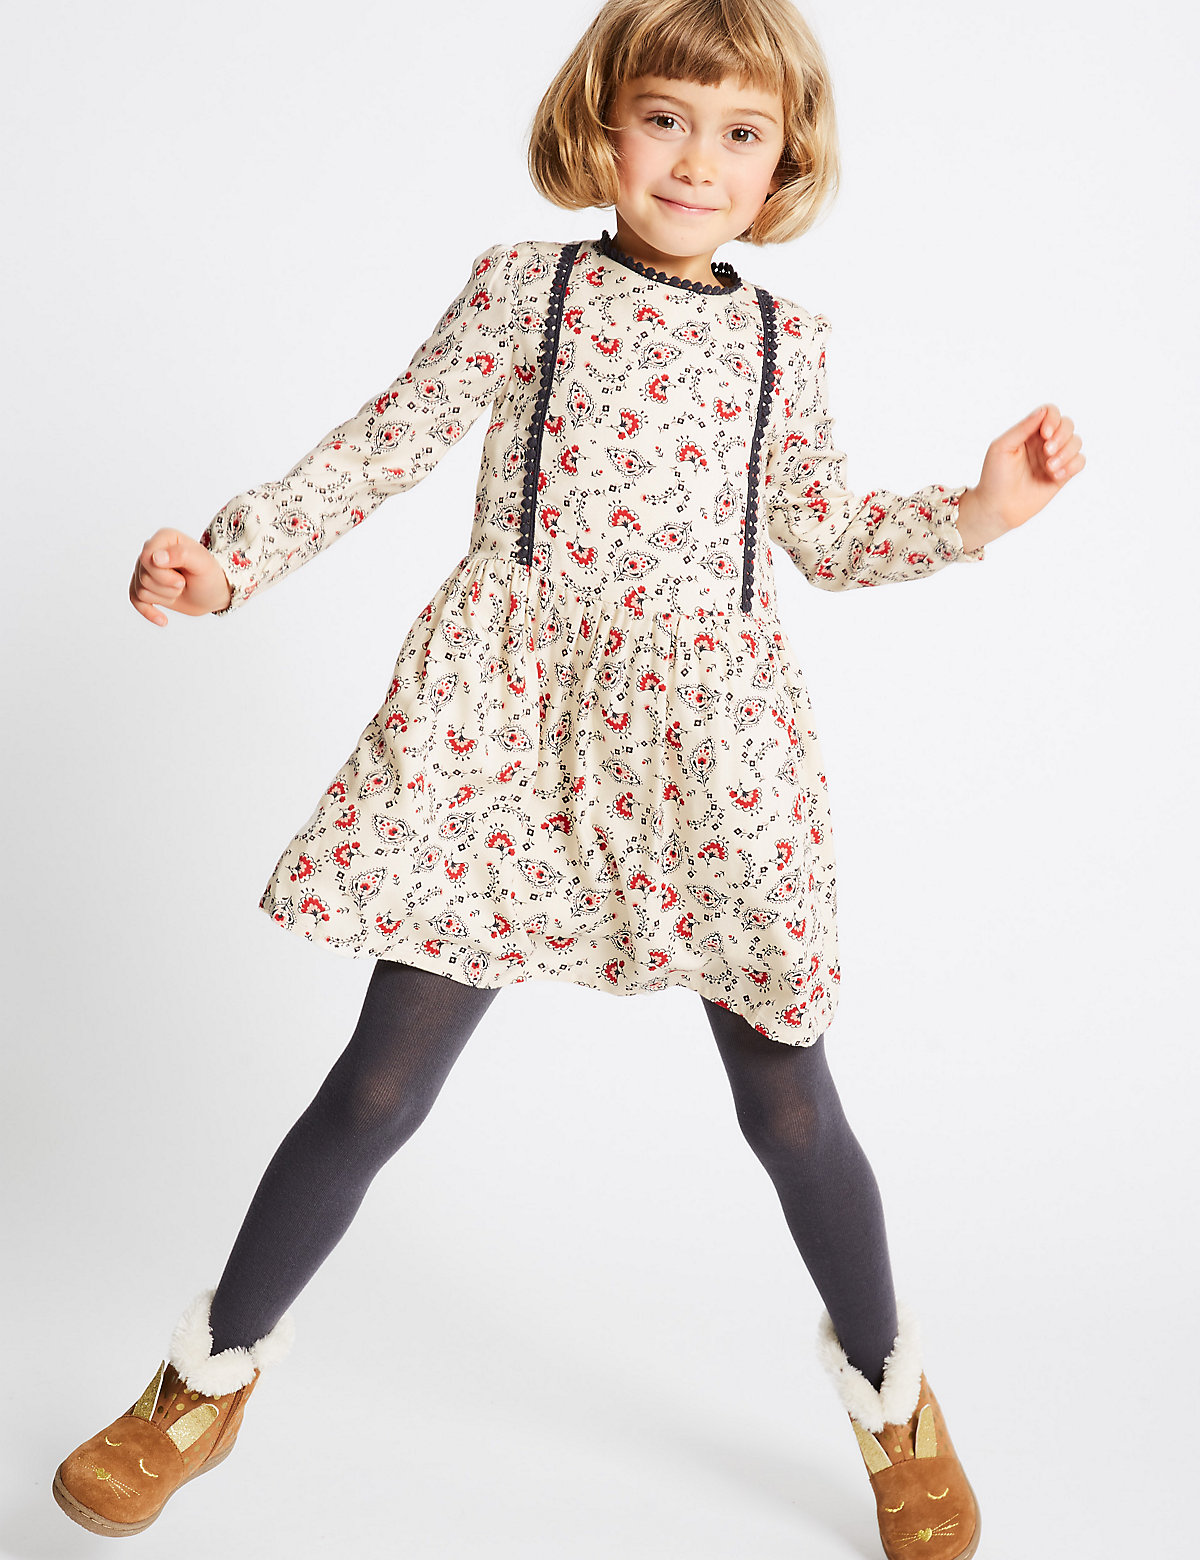 2 Piece Flower Print Dress with Tights Outfit (3 Months - 6 Years)